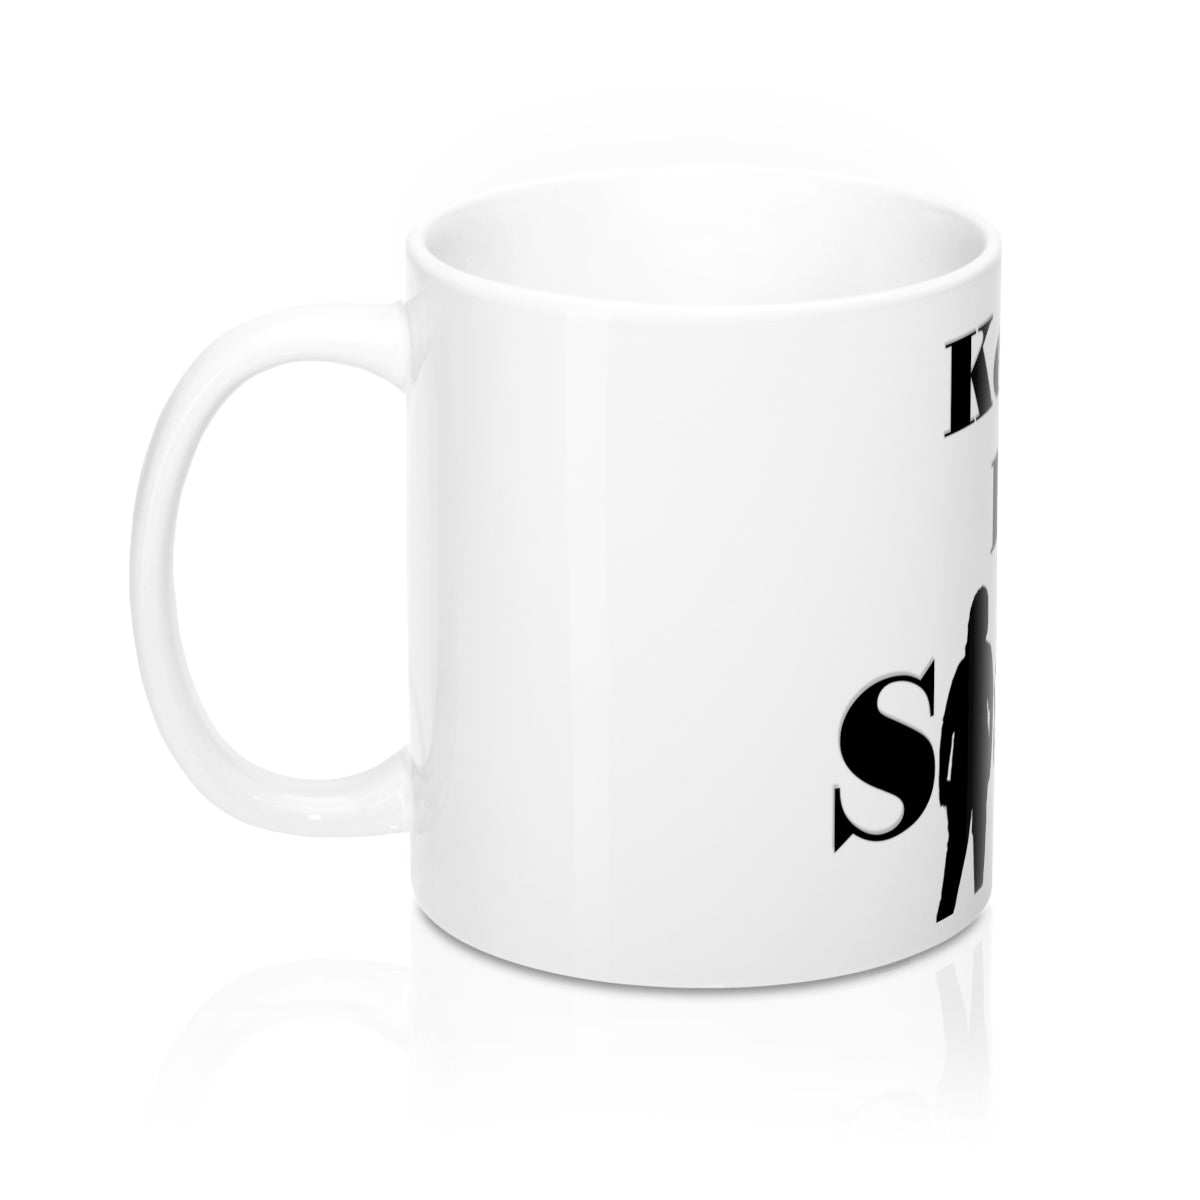 Sassy & Swag Collections - Keep It Sassy Mug 11oz